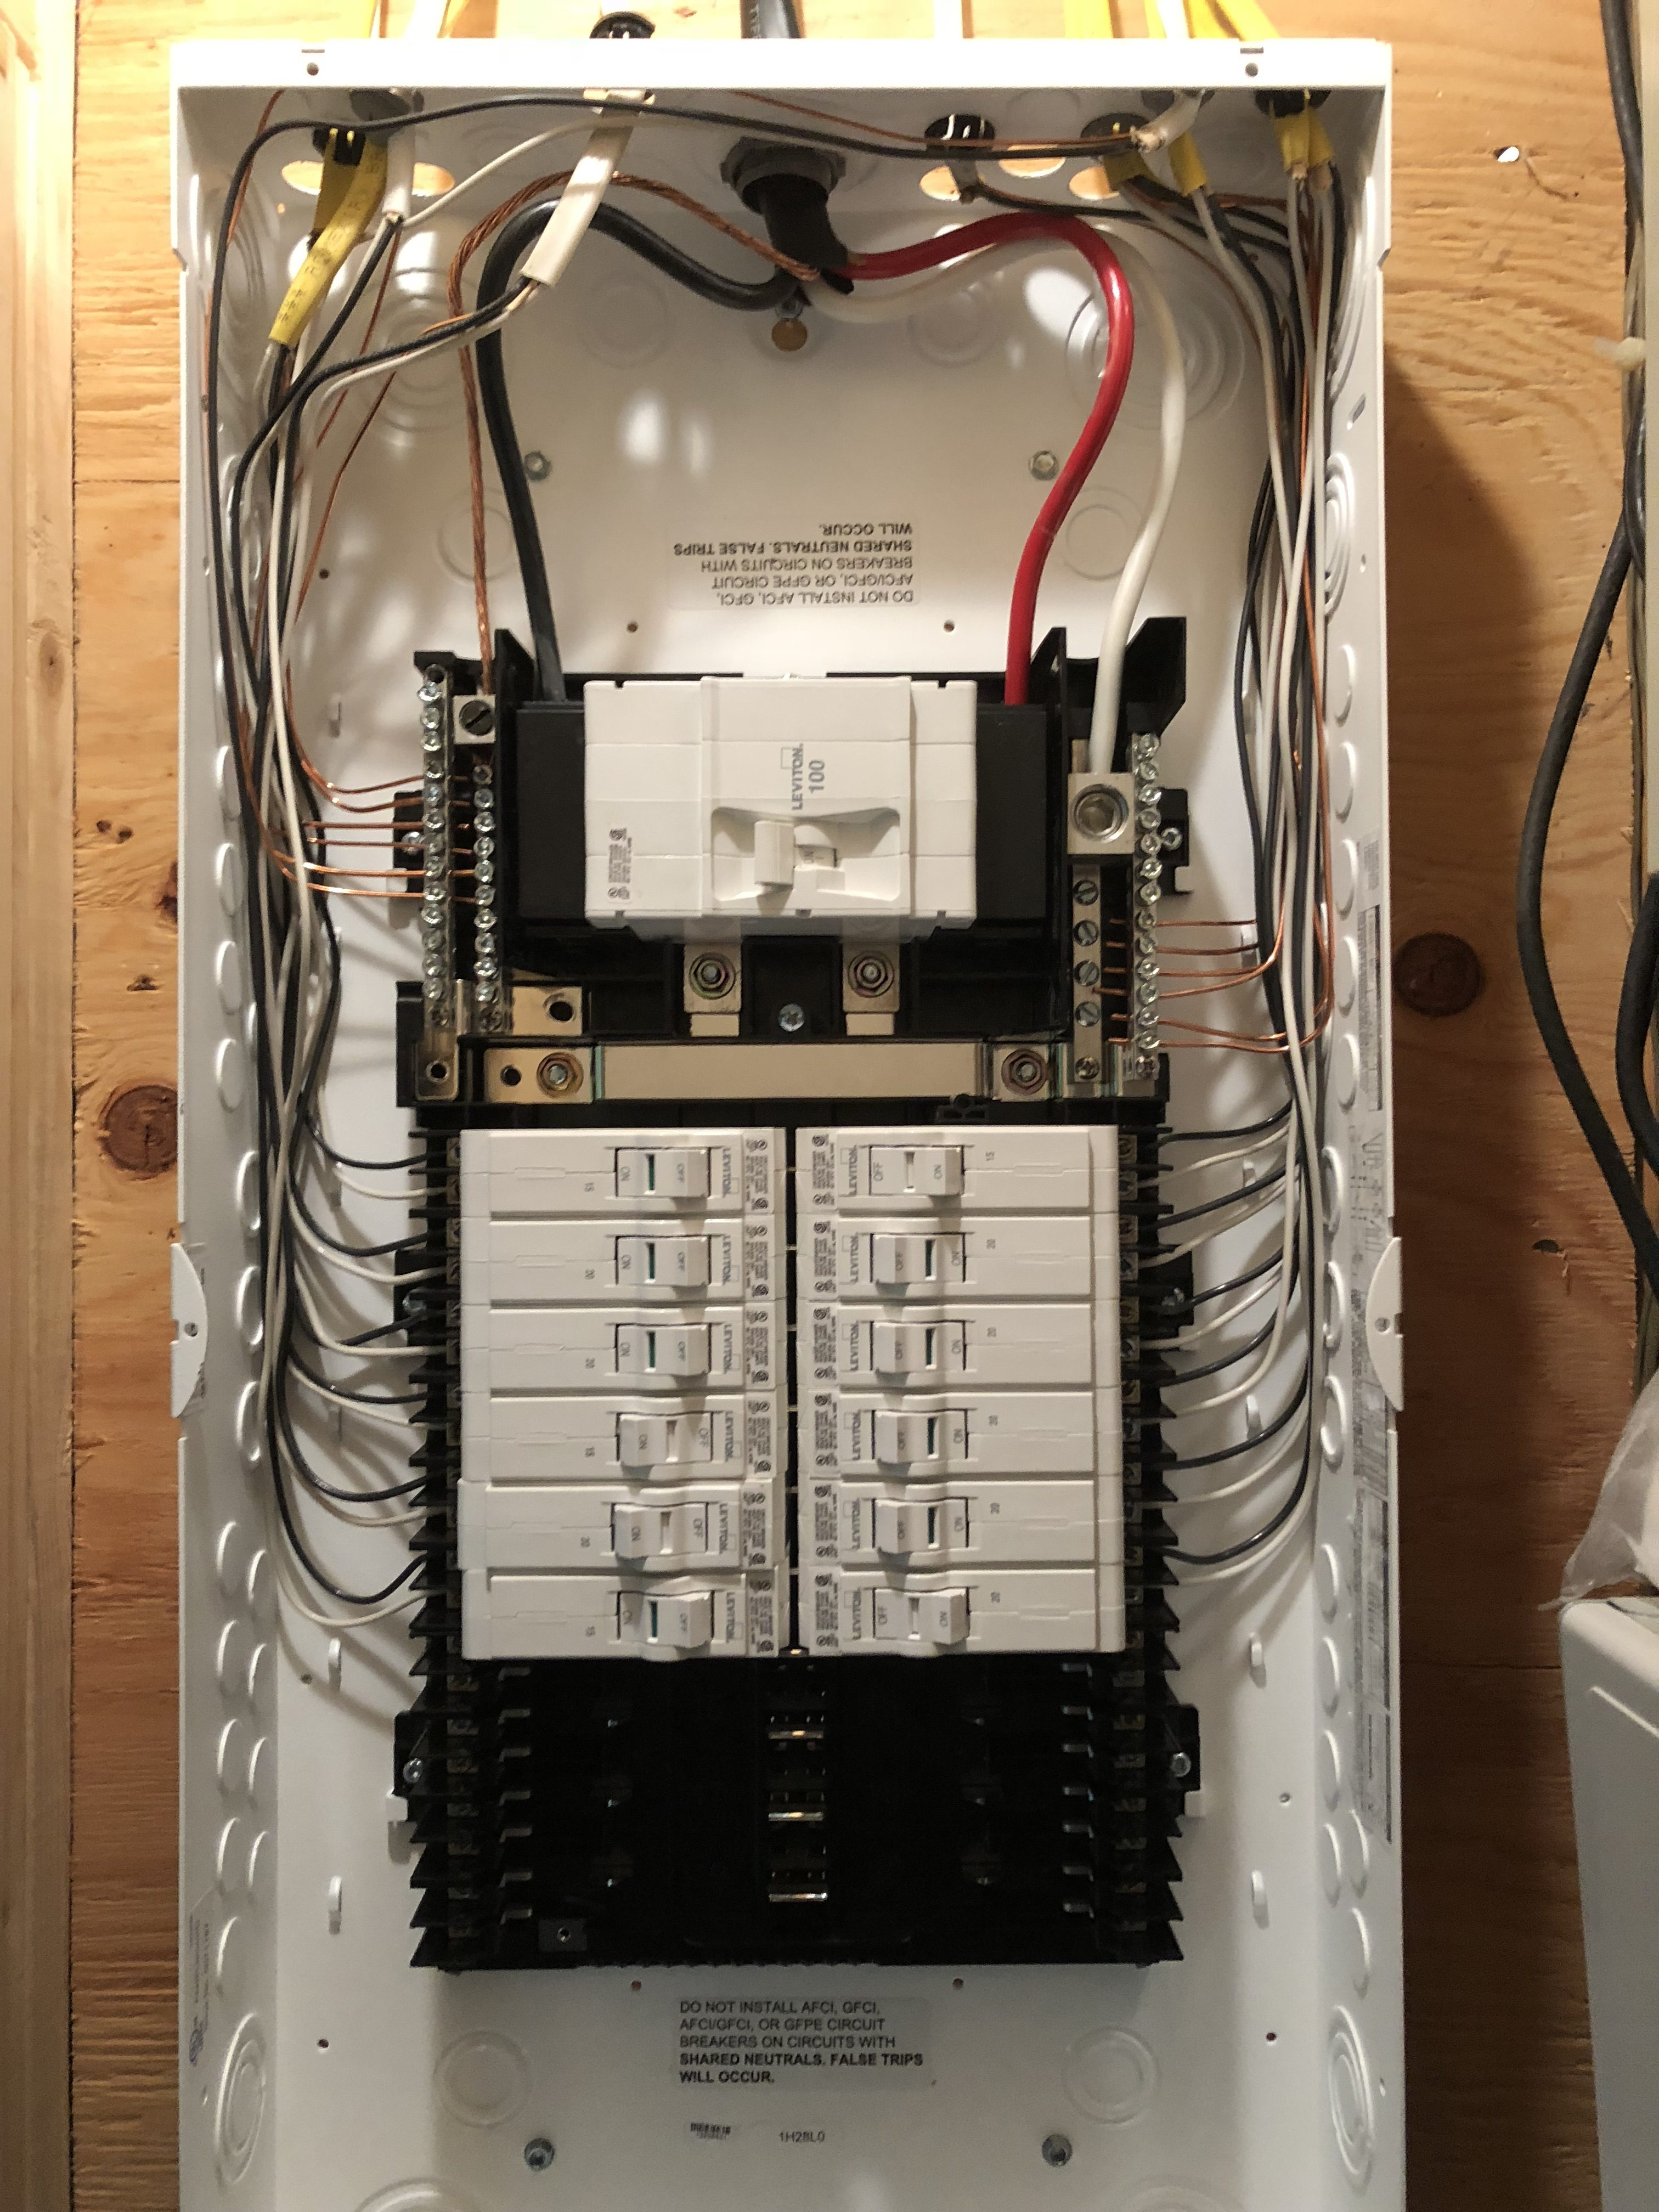 Worthington Distribution Anyone Can Offer Partswe Solutions Wiring Also Electrical Circuit Breaker Panel Box Together With Leviton Updated Load Center And Delivers That For Questions On The Please Give Us A Call At 800 282 8864 Or Email Salesworthdistcom